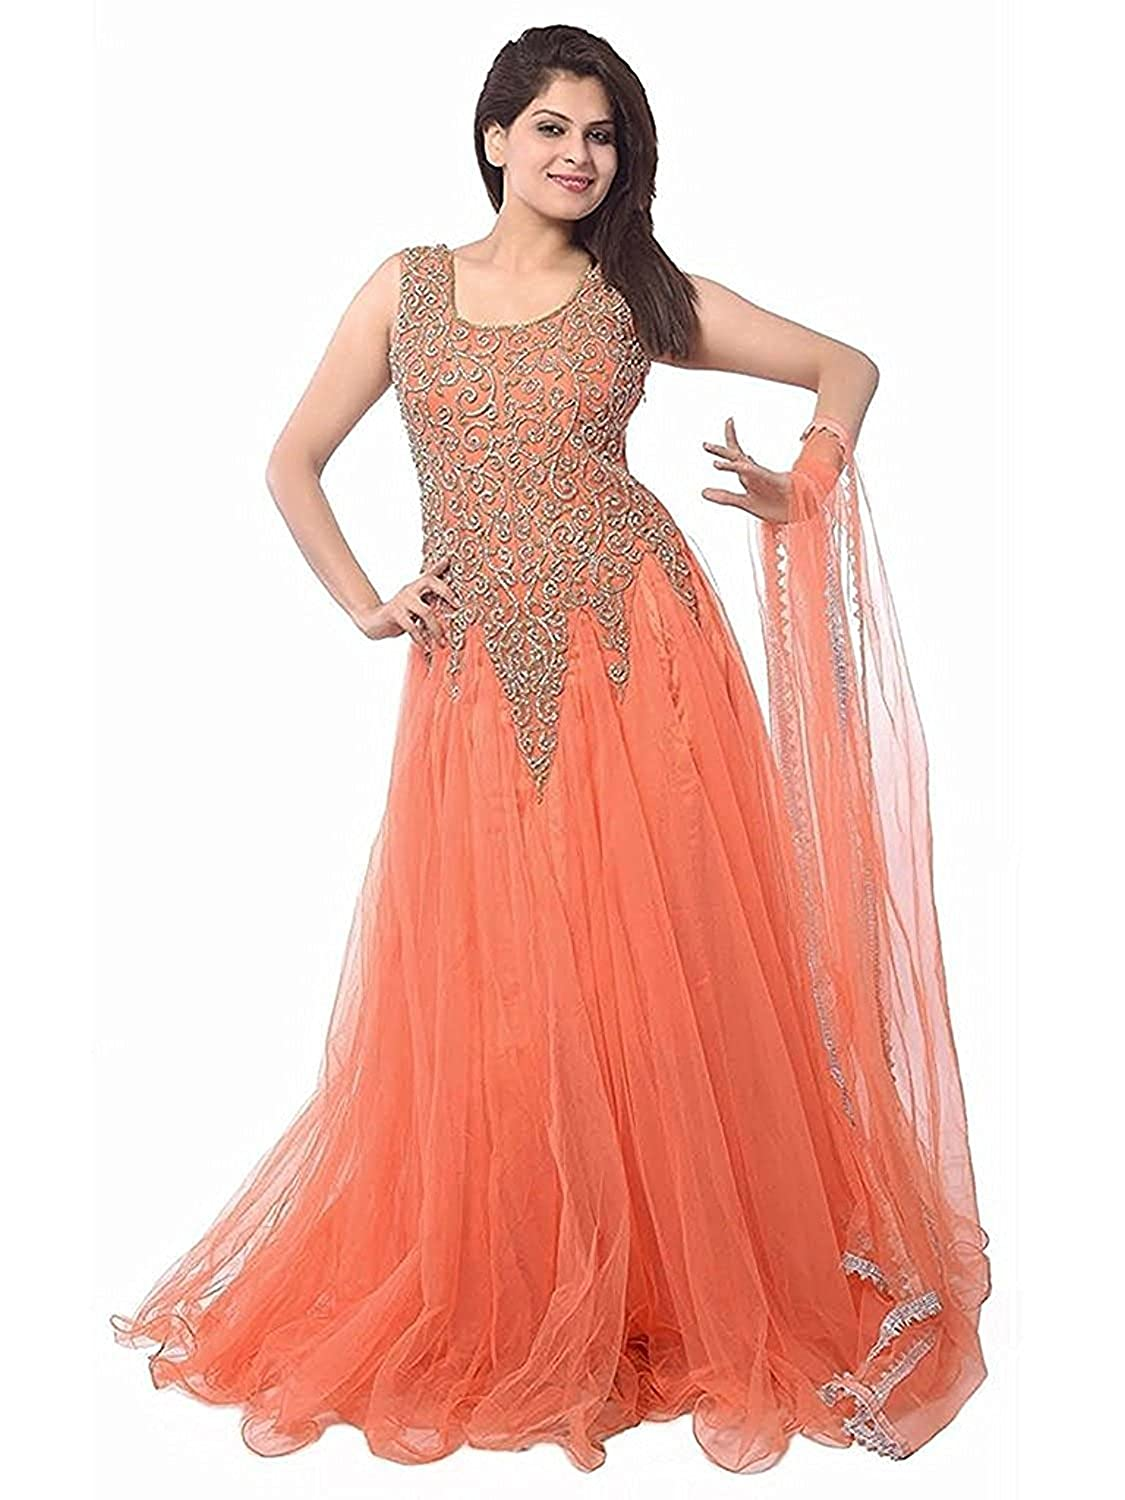 gowns for women party wear (Womens Clothy Gawns All festival Lehenga ...